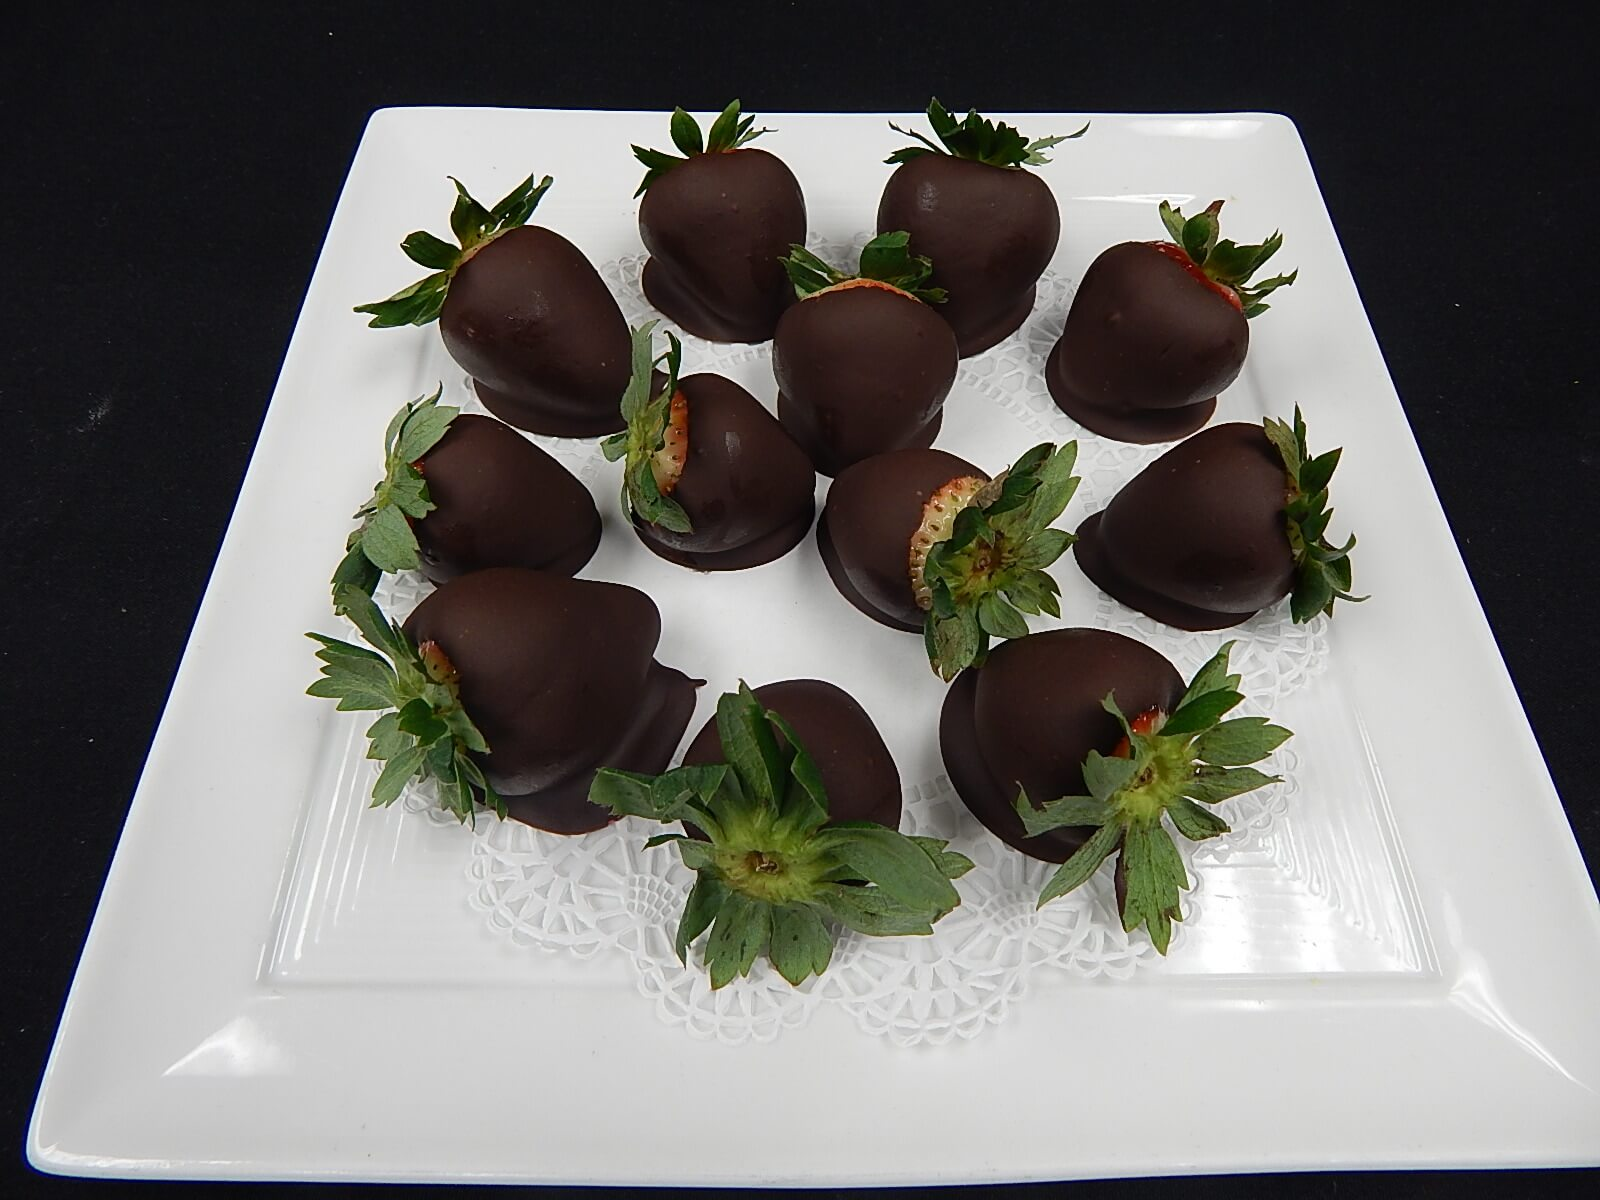 Chocolate dipped strawberries gf the living room for Living room 101 atlantic ave boston